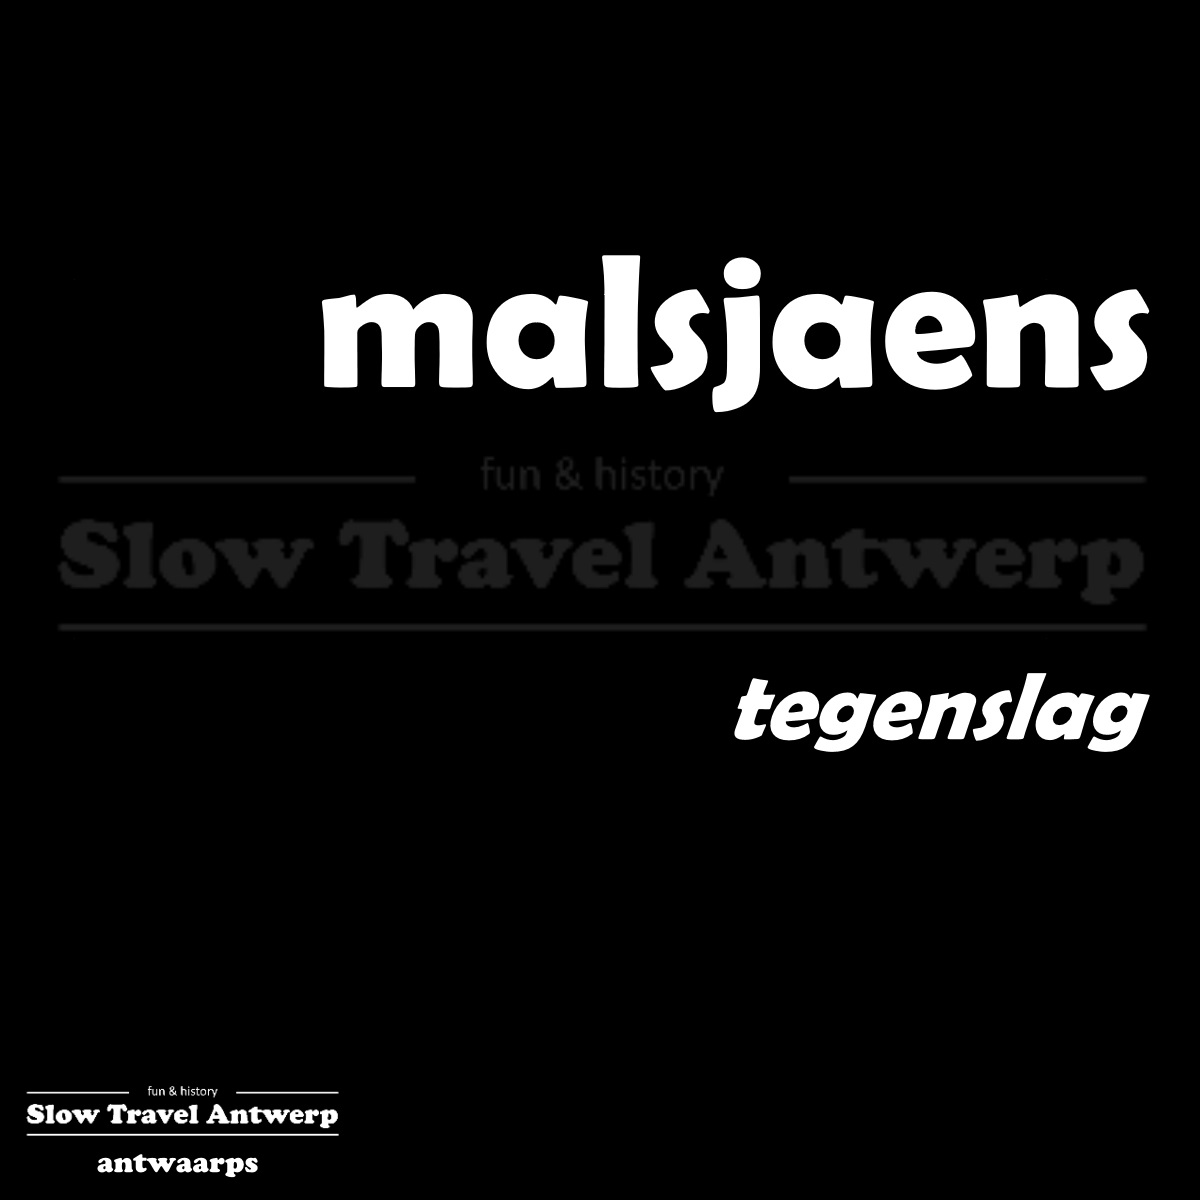 malsjaens – tegenslag – bad luck